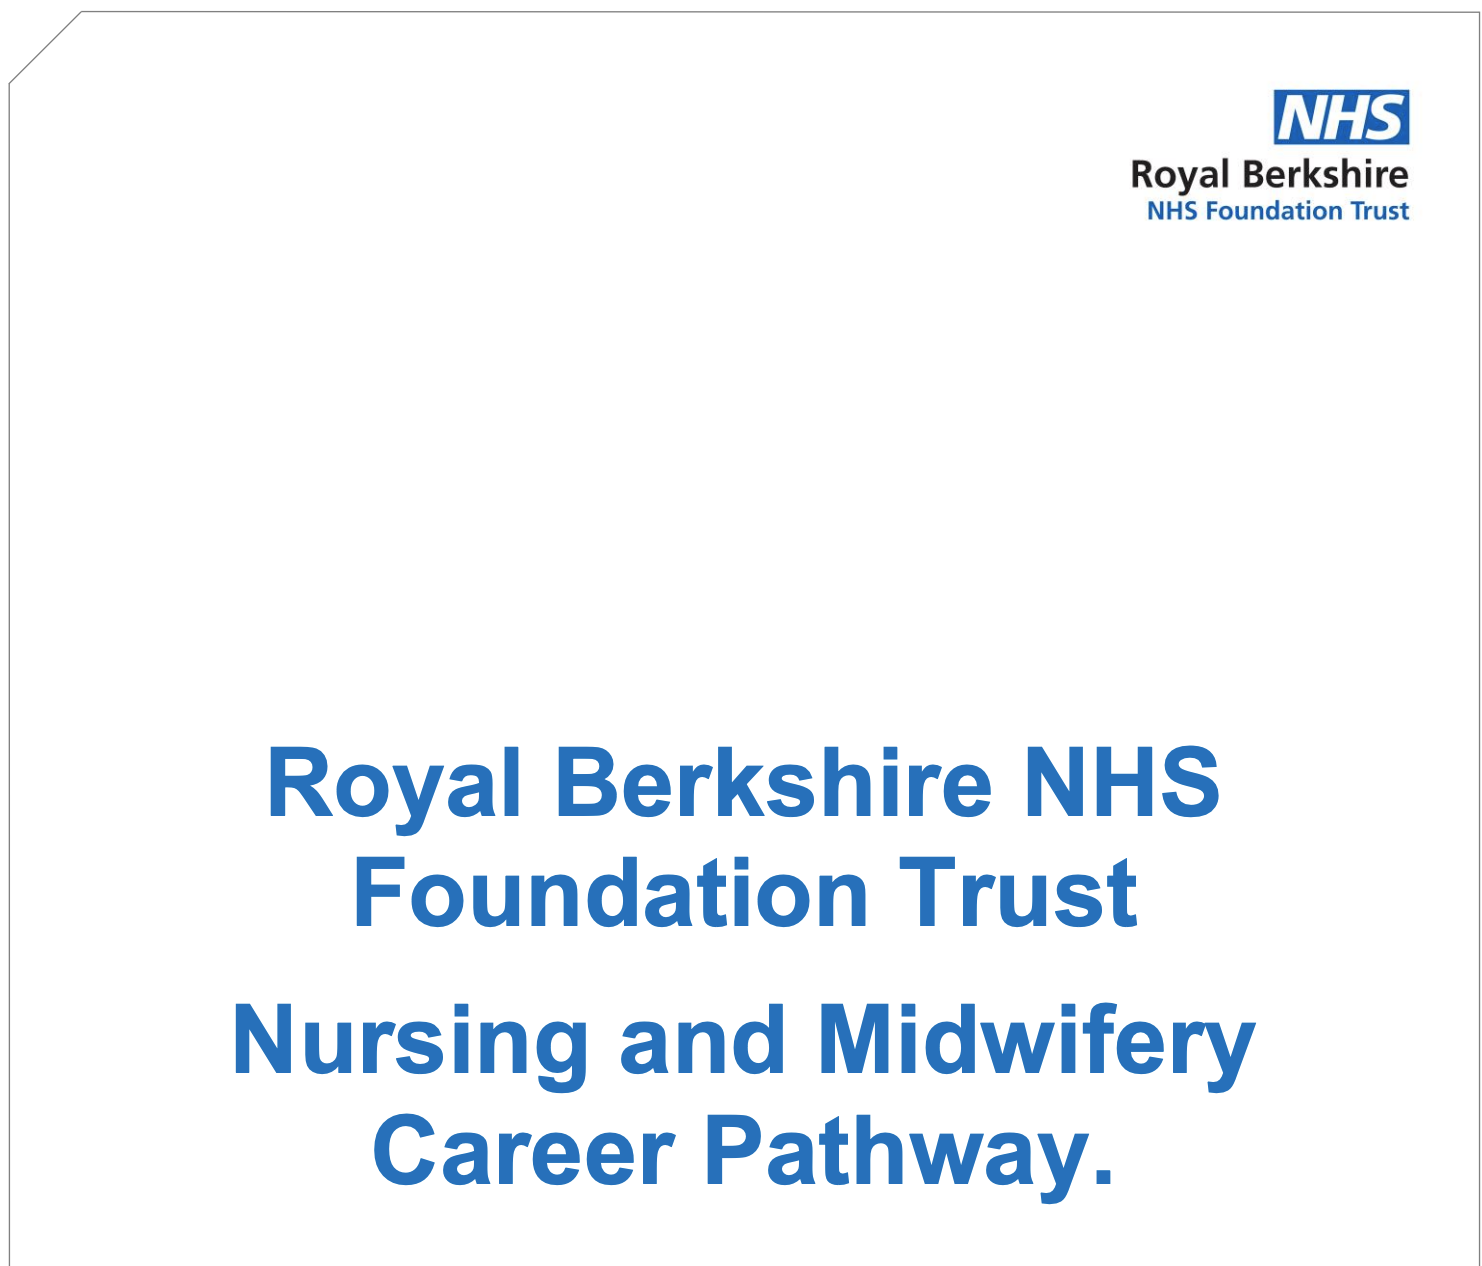 Nursing and Midwifery Career Pathway - Royal Berkshire NHS FT Trust featured image